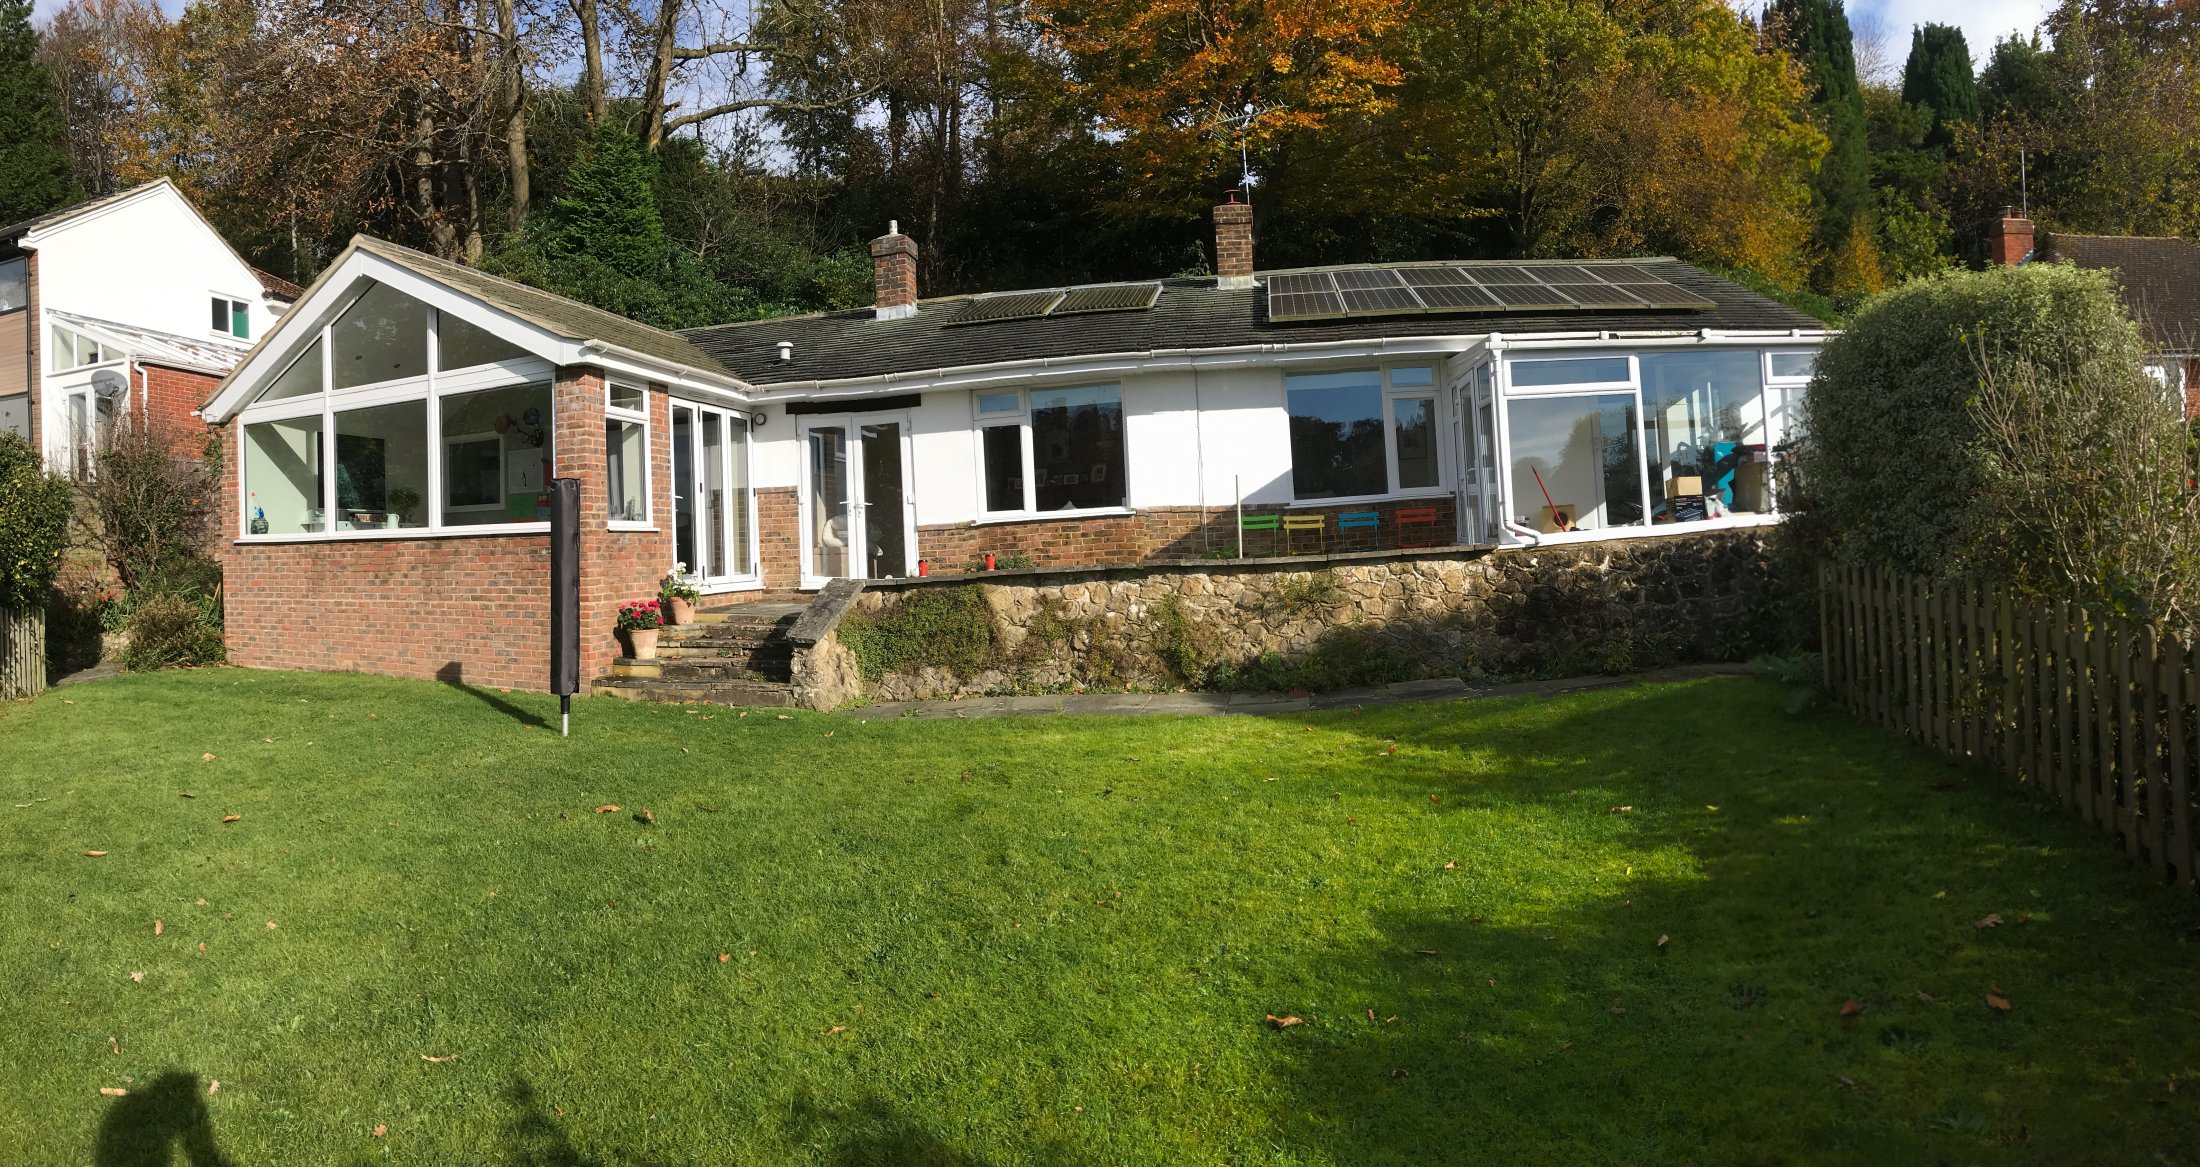 Window Cleaning in Haslemere